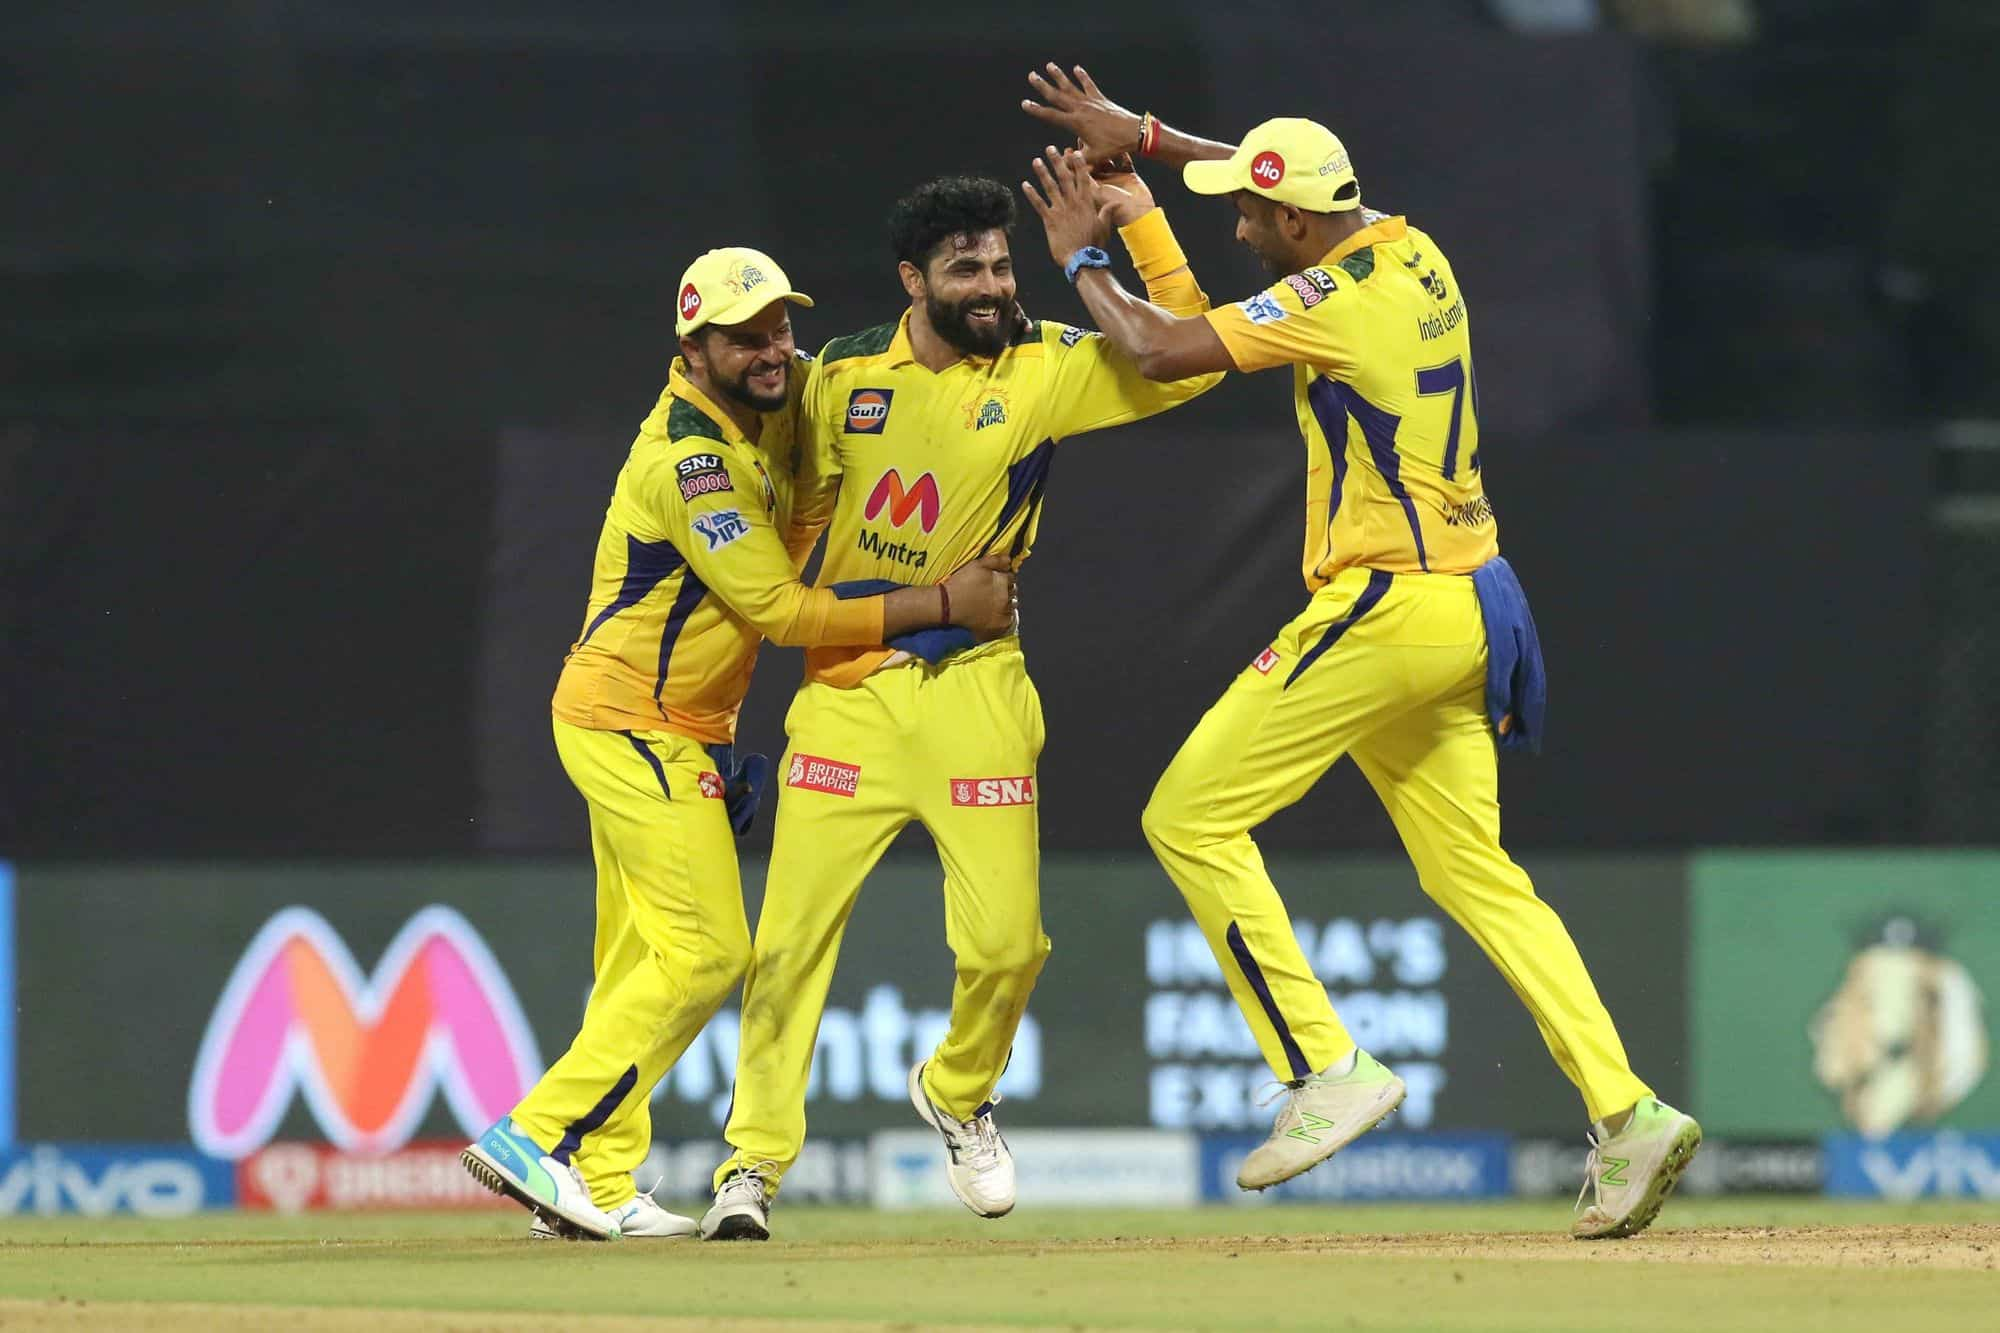 CSK vs RR: Moeen Ali, Ravindra Jadeja Shine As Chennai Super Kings Choke Rajasthan Royals With Spin